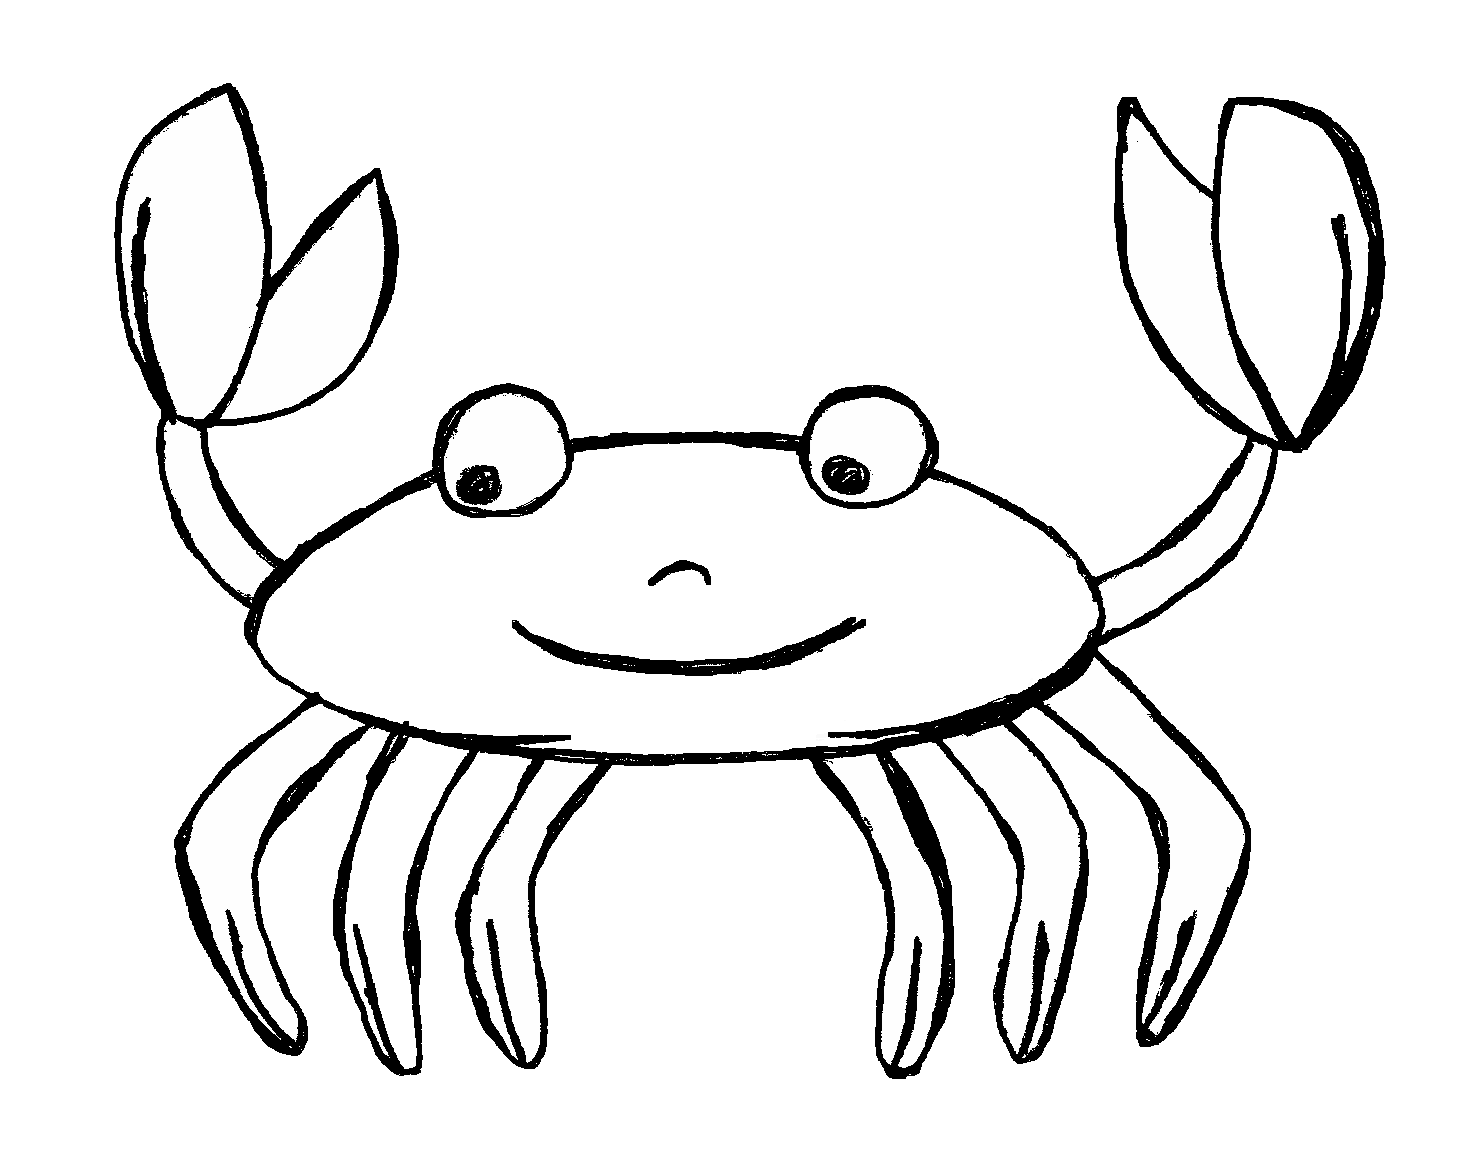 Seafood drawing face. Jelly clip art